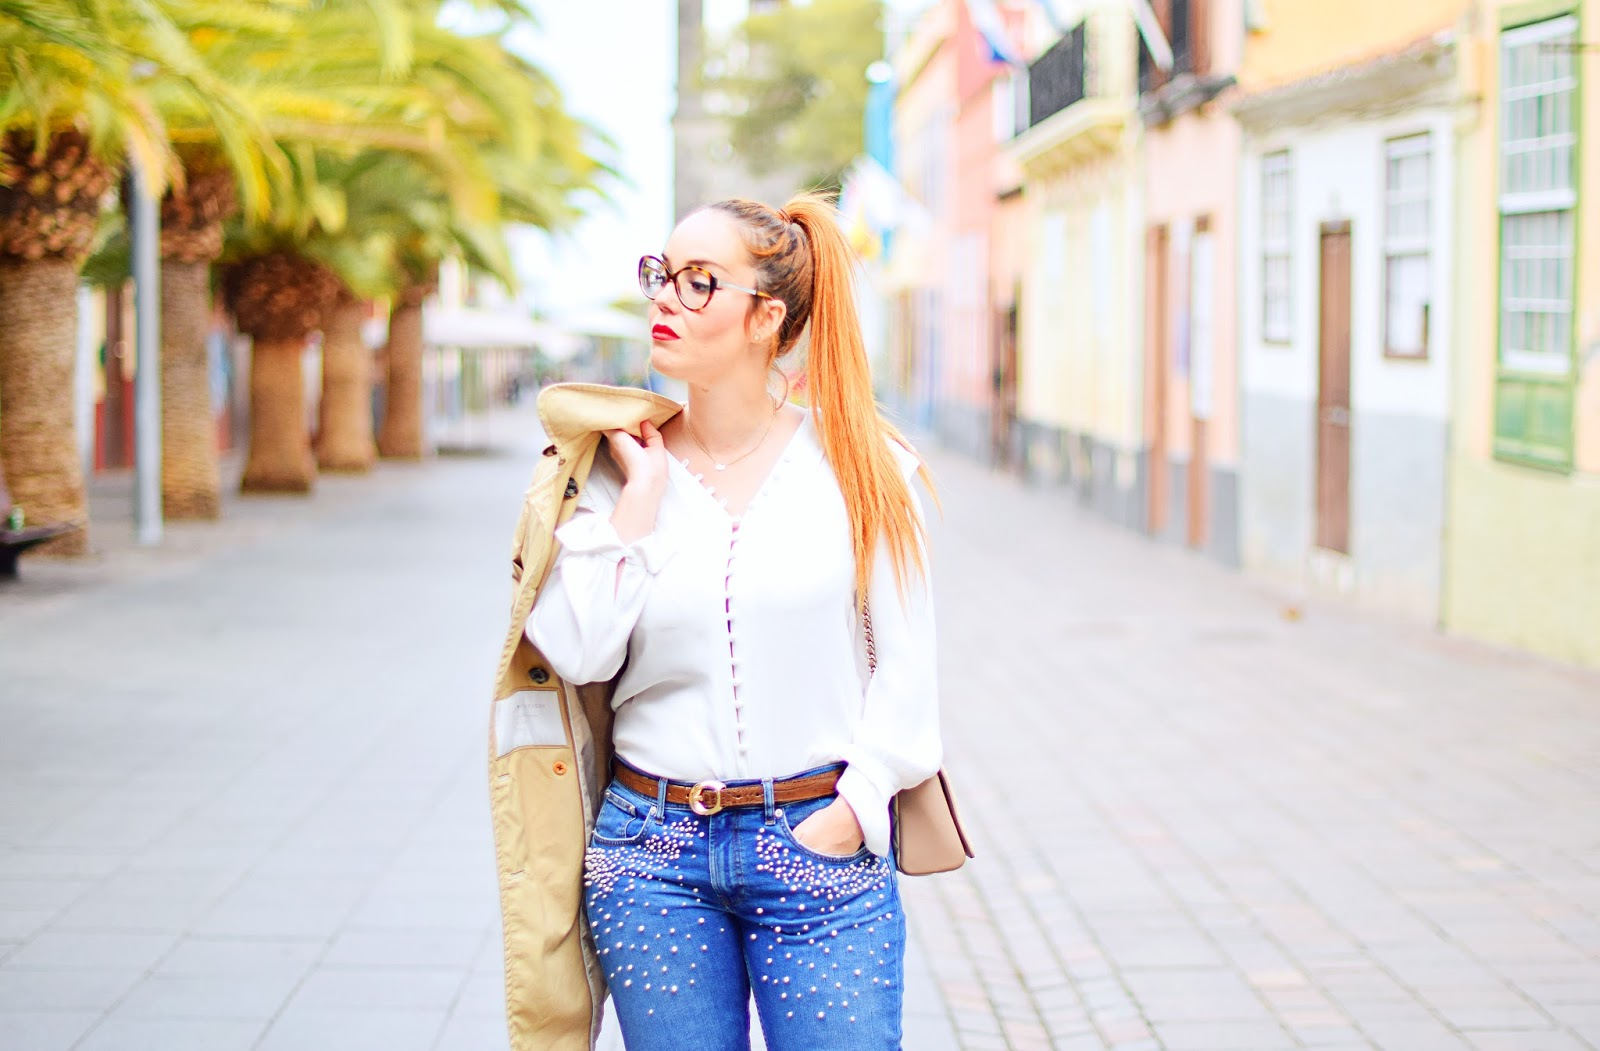 nery hdez, tommy hilfiger, chanel, opticalh, look for work, everydaylook,